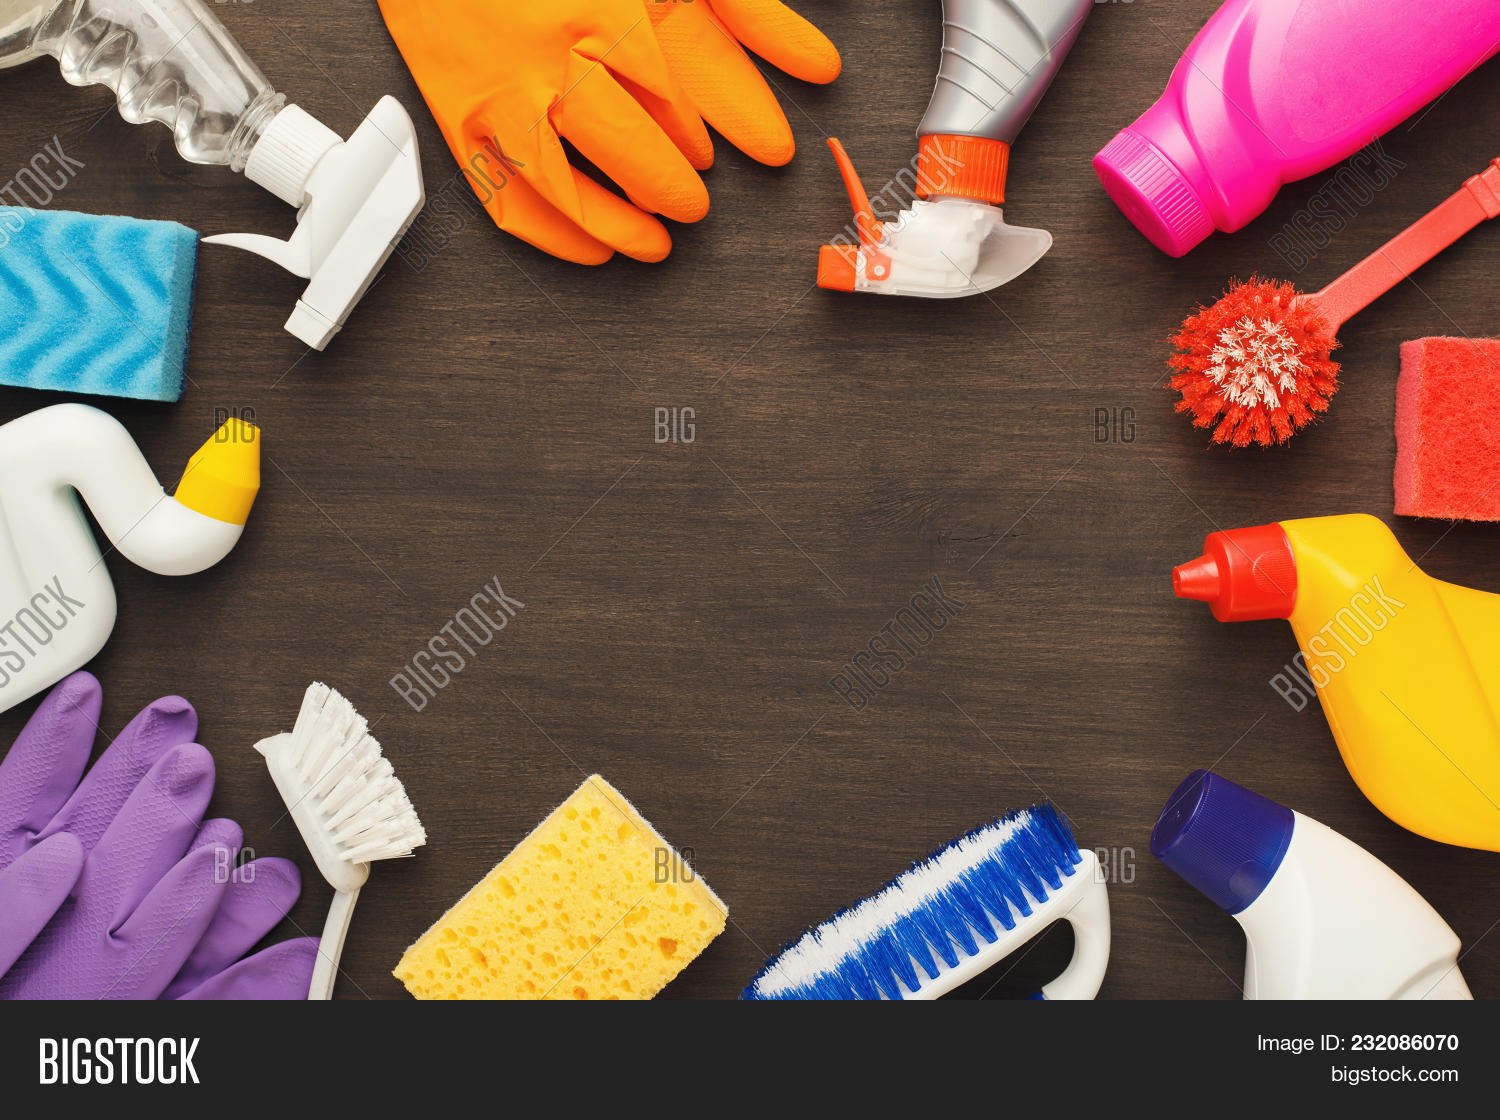 advertisement,assortment,background,blue,bottle,brush,chemical,chores,clean,cleaner,cleaning,color,concept,copy,detergent,domestic,equipment,fluid,group,home,house,household,housekeeping,hygiene,liquid,mockup,nobody,plastic,product,rag,rubber,sanitary,sanitize,service,set,space,sponge,spray,spring,sterilize,supplies,tidy,tool,top,view,wash,wood,work,yellow